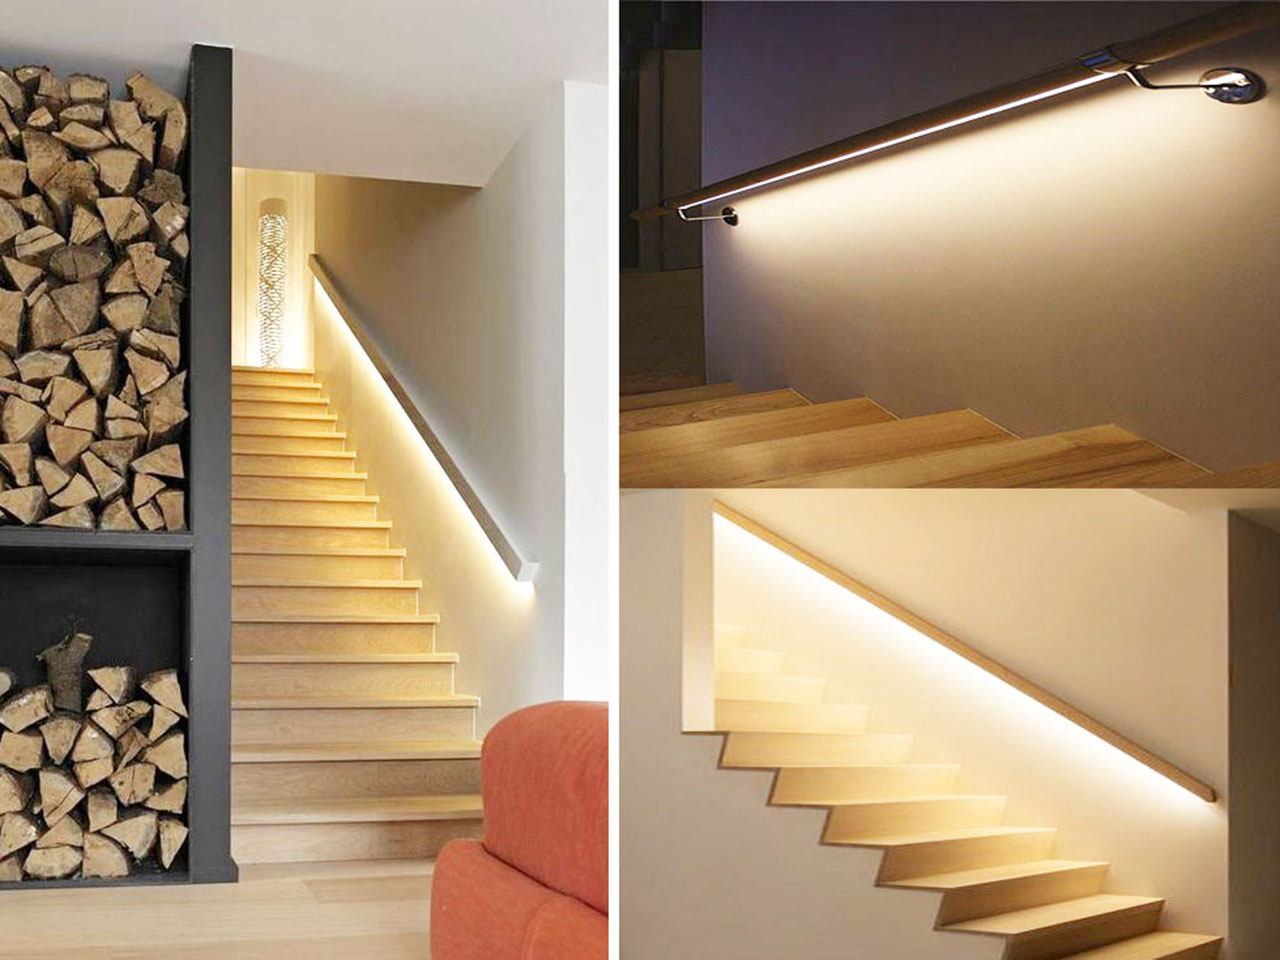 Descubre la decoraci n con luces led y todas sus ventajas - Iluminacion escaleras interiores ...